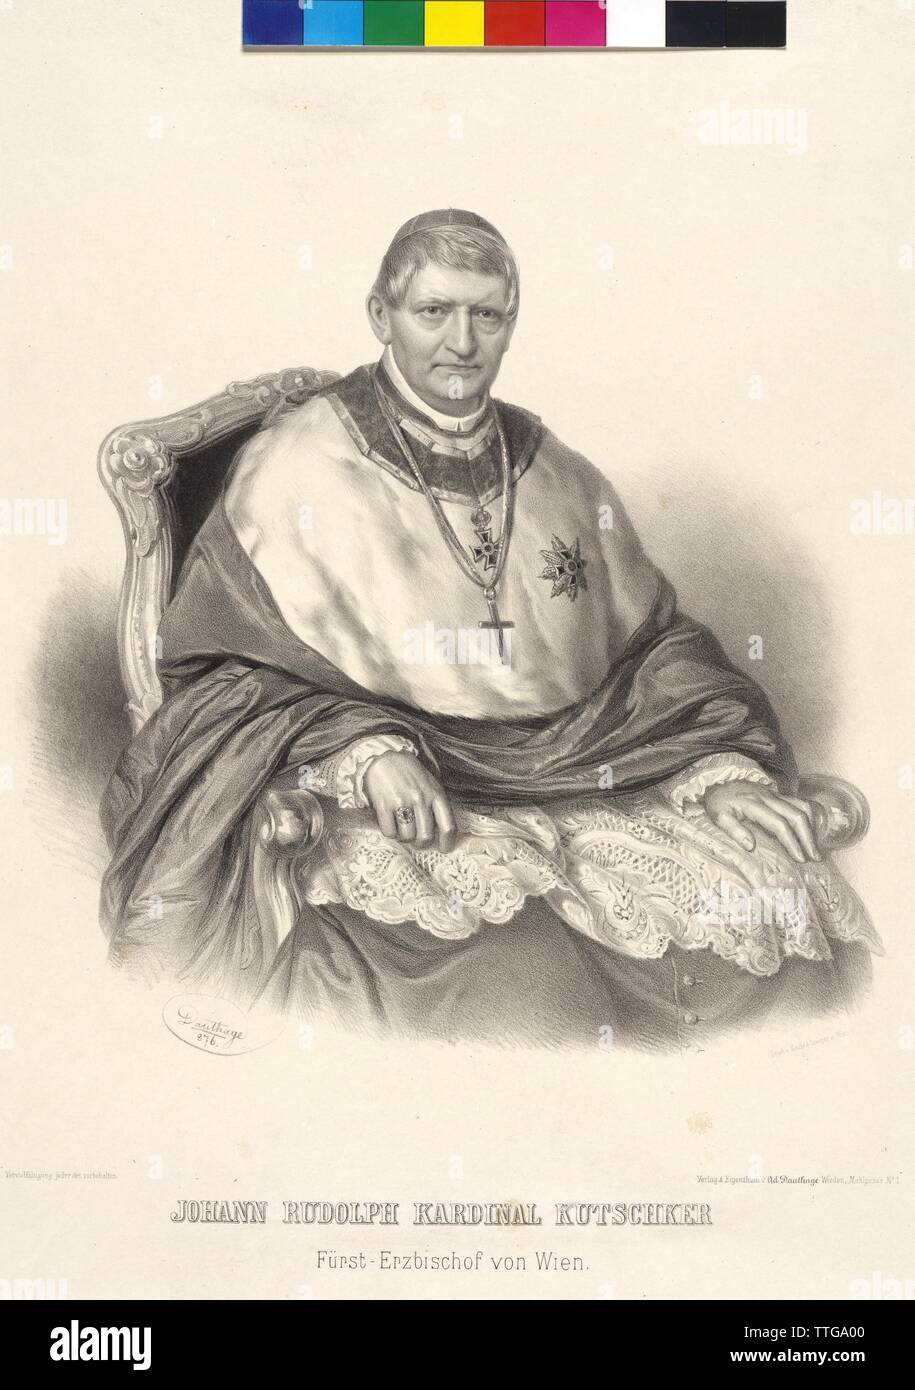 Johann Rudolf cardinal Kutschker Prince Archbishop of Vienna, lithograph by Adolf Dauthage, Additional-Rights-Clearance-Info-Not-Available - Stock Image